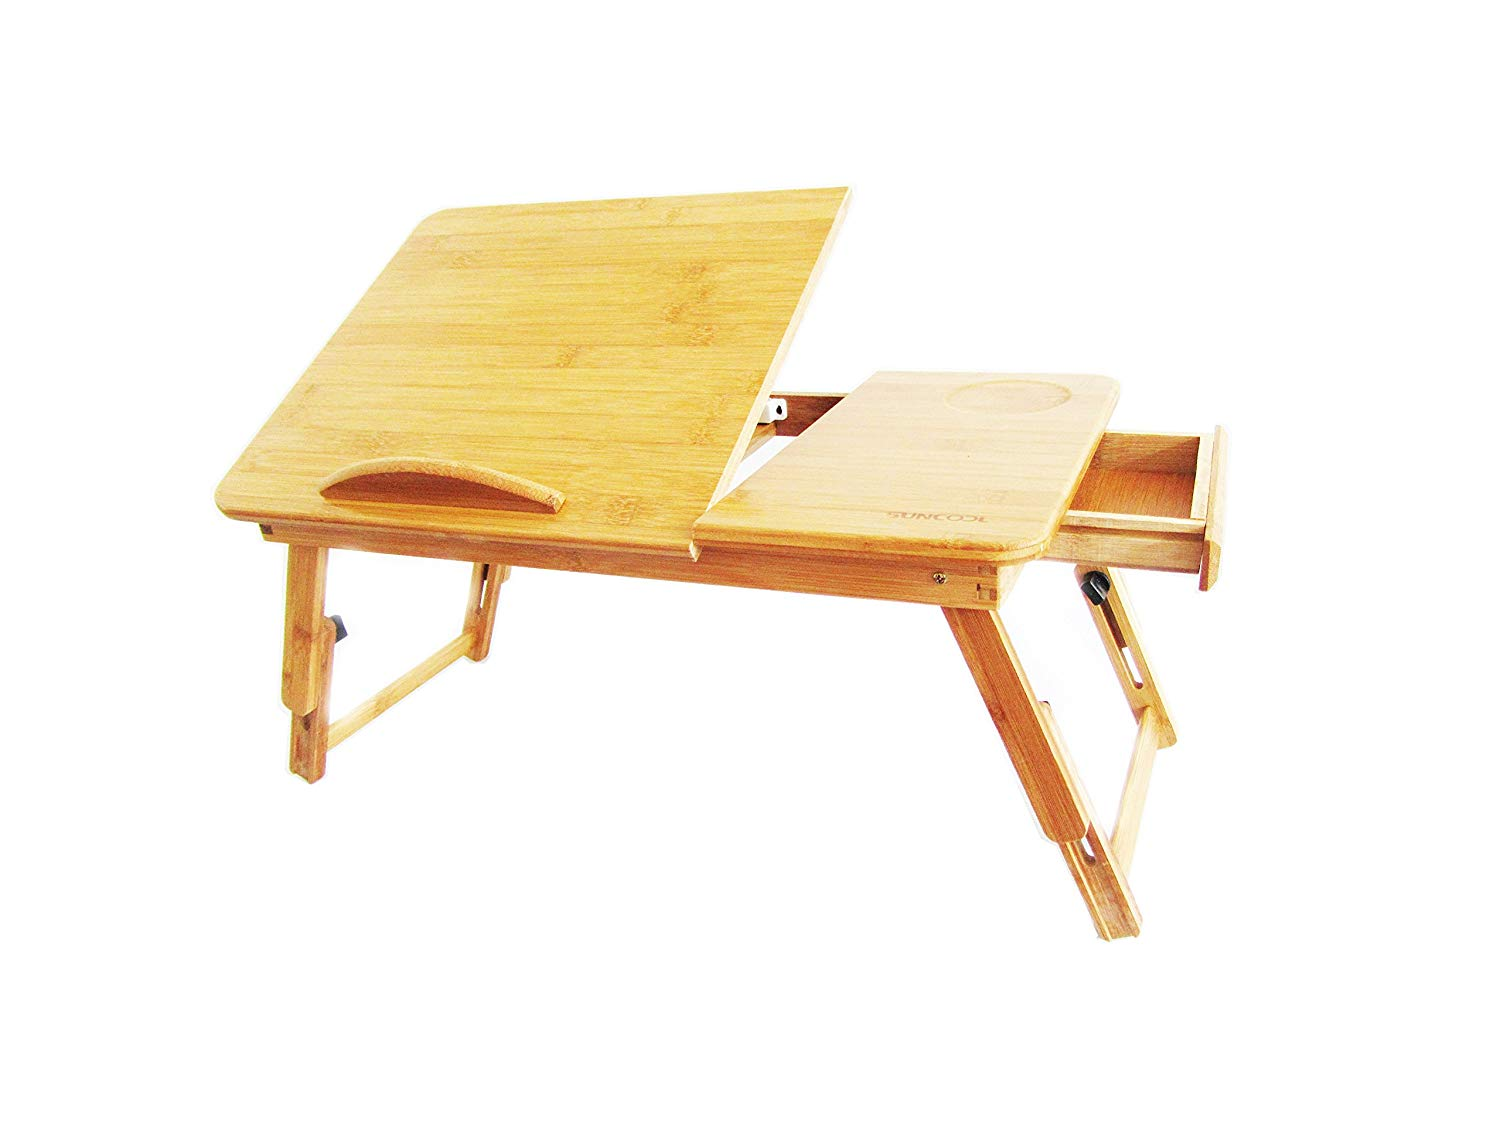 B&L Bamboo Adjustable Laptop-Desk/Bed-Tray/Lap-desk/Table with Lockable Legs, and Drawer